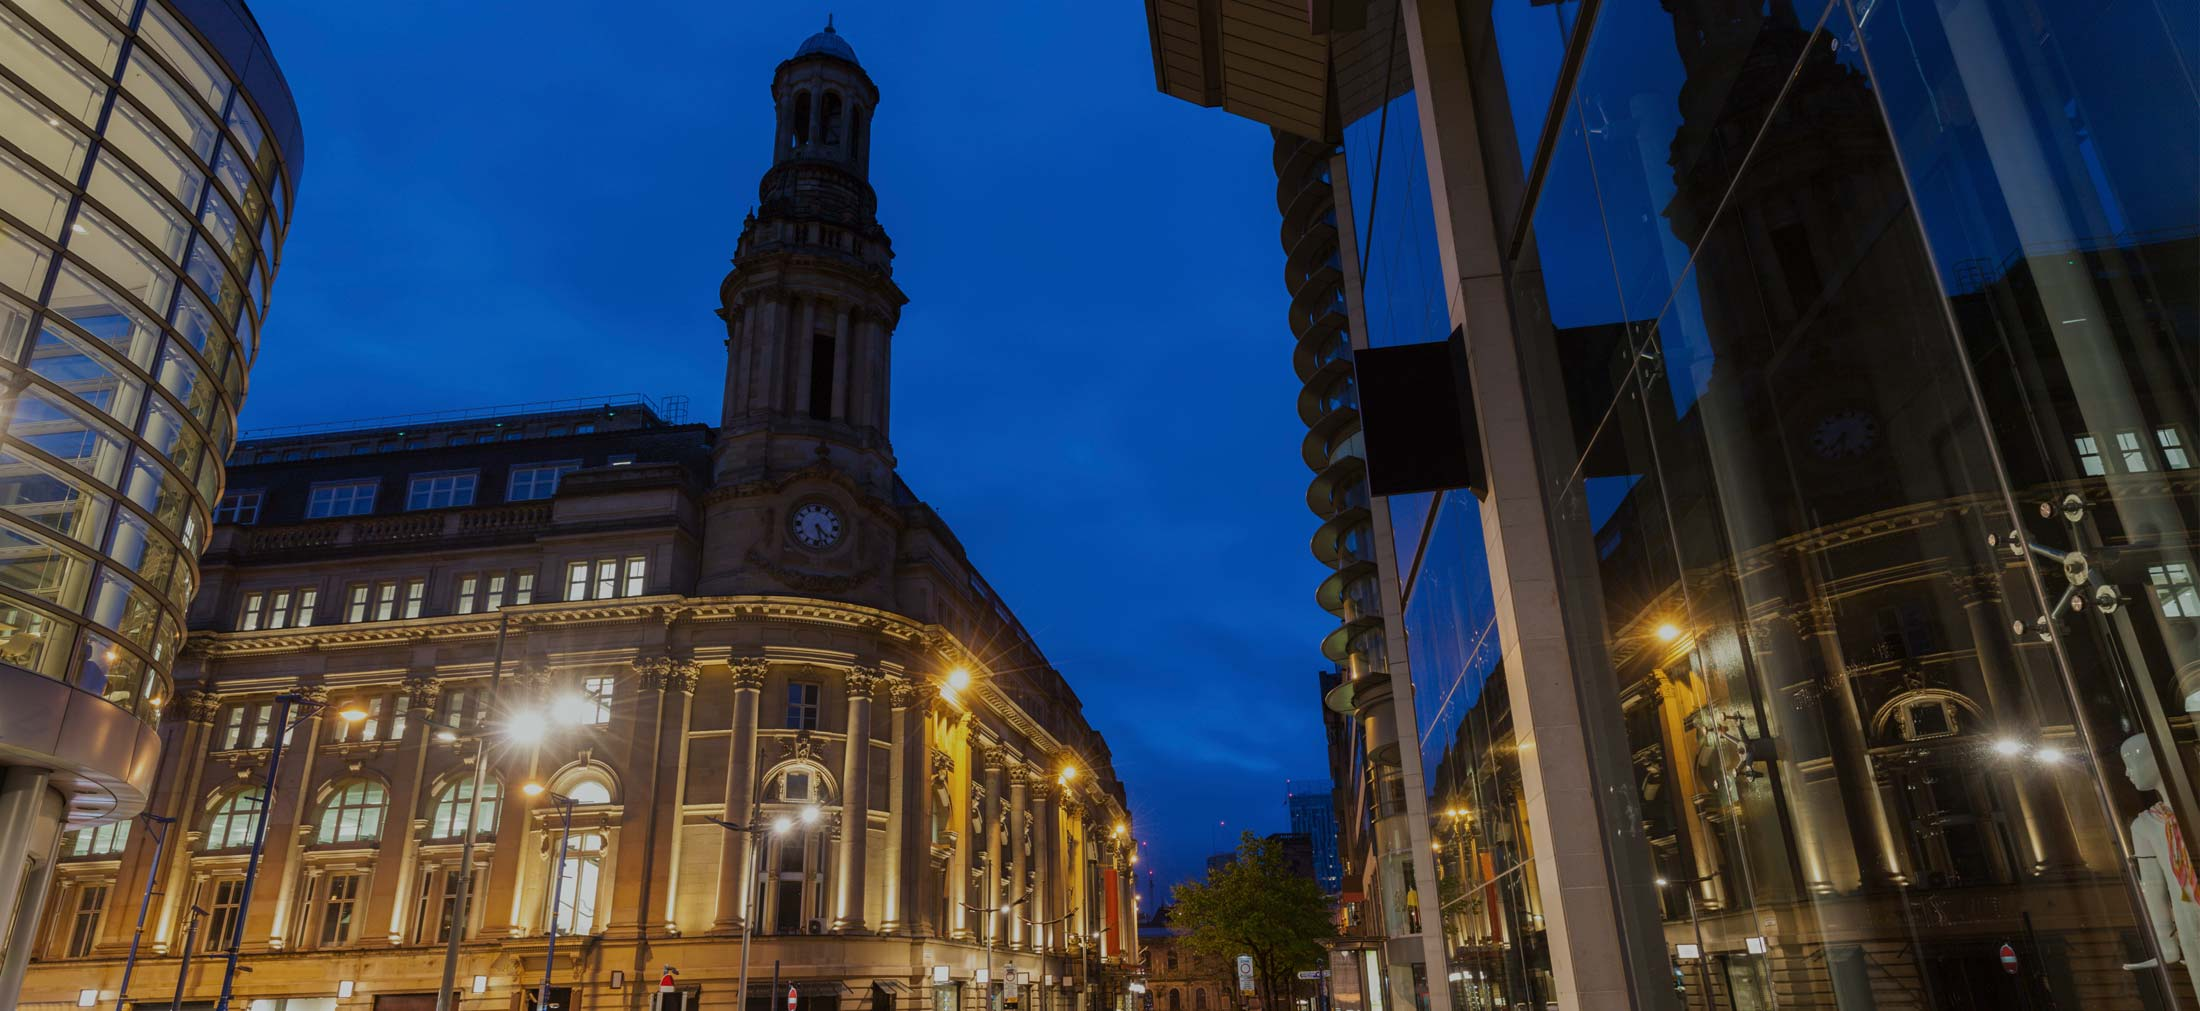 Manchester buy to let market to thrive as Brexit deadline draws closer